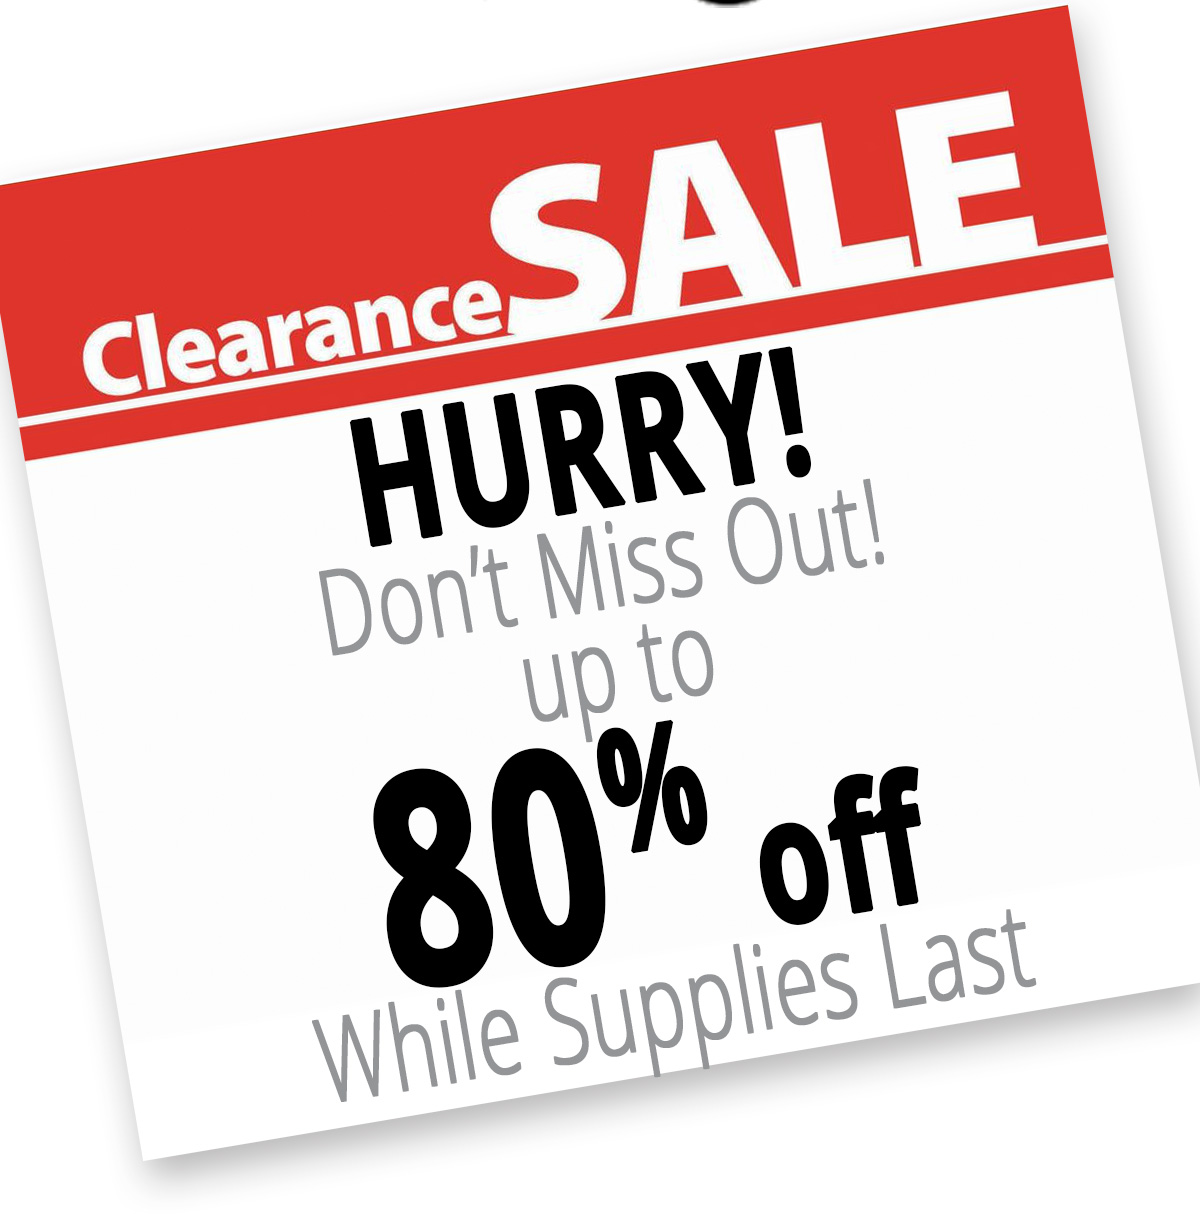 Shop our Clearance items today and get up to 80% off while supplies last!